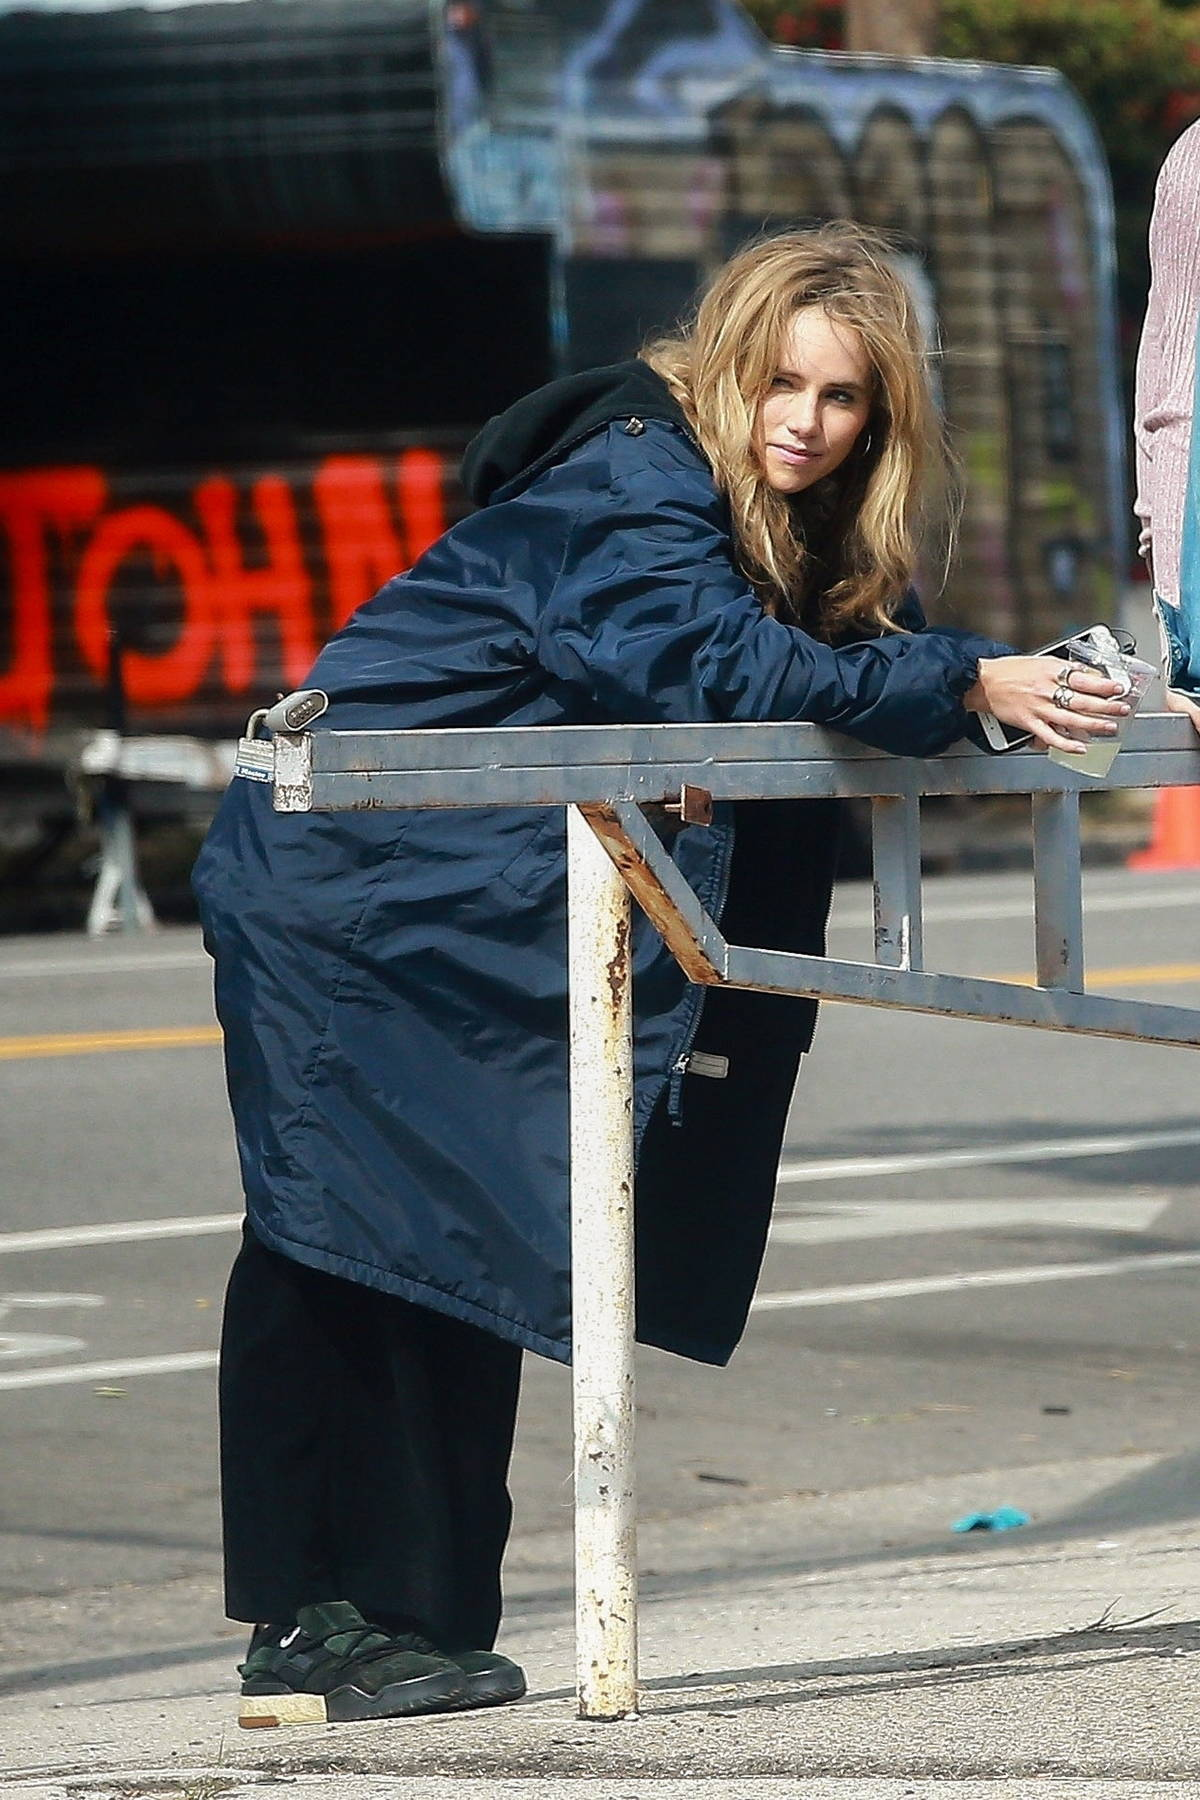 Suki Waterhouse spotted during a break while filming 'Daisy Jones & The Six' in Los Angeles